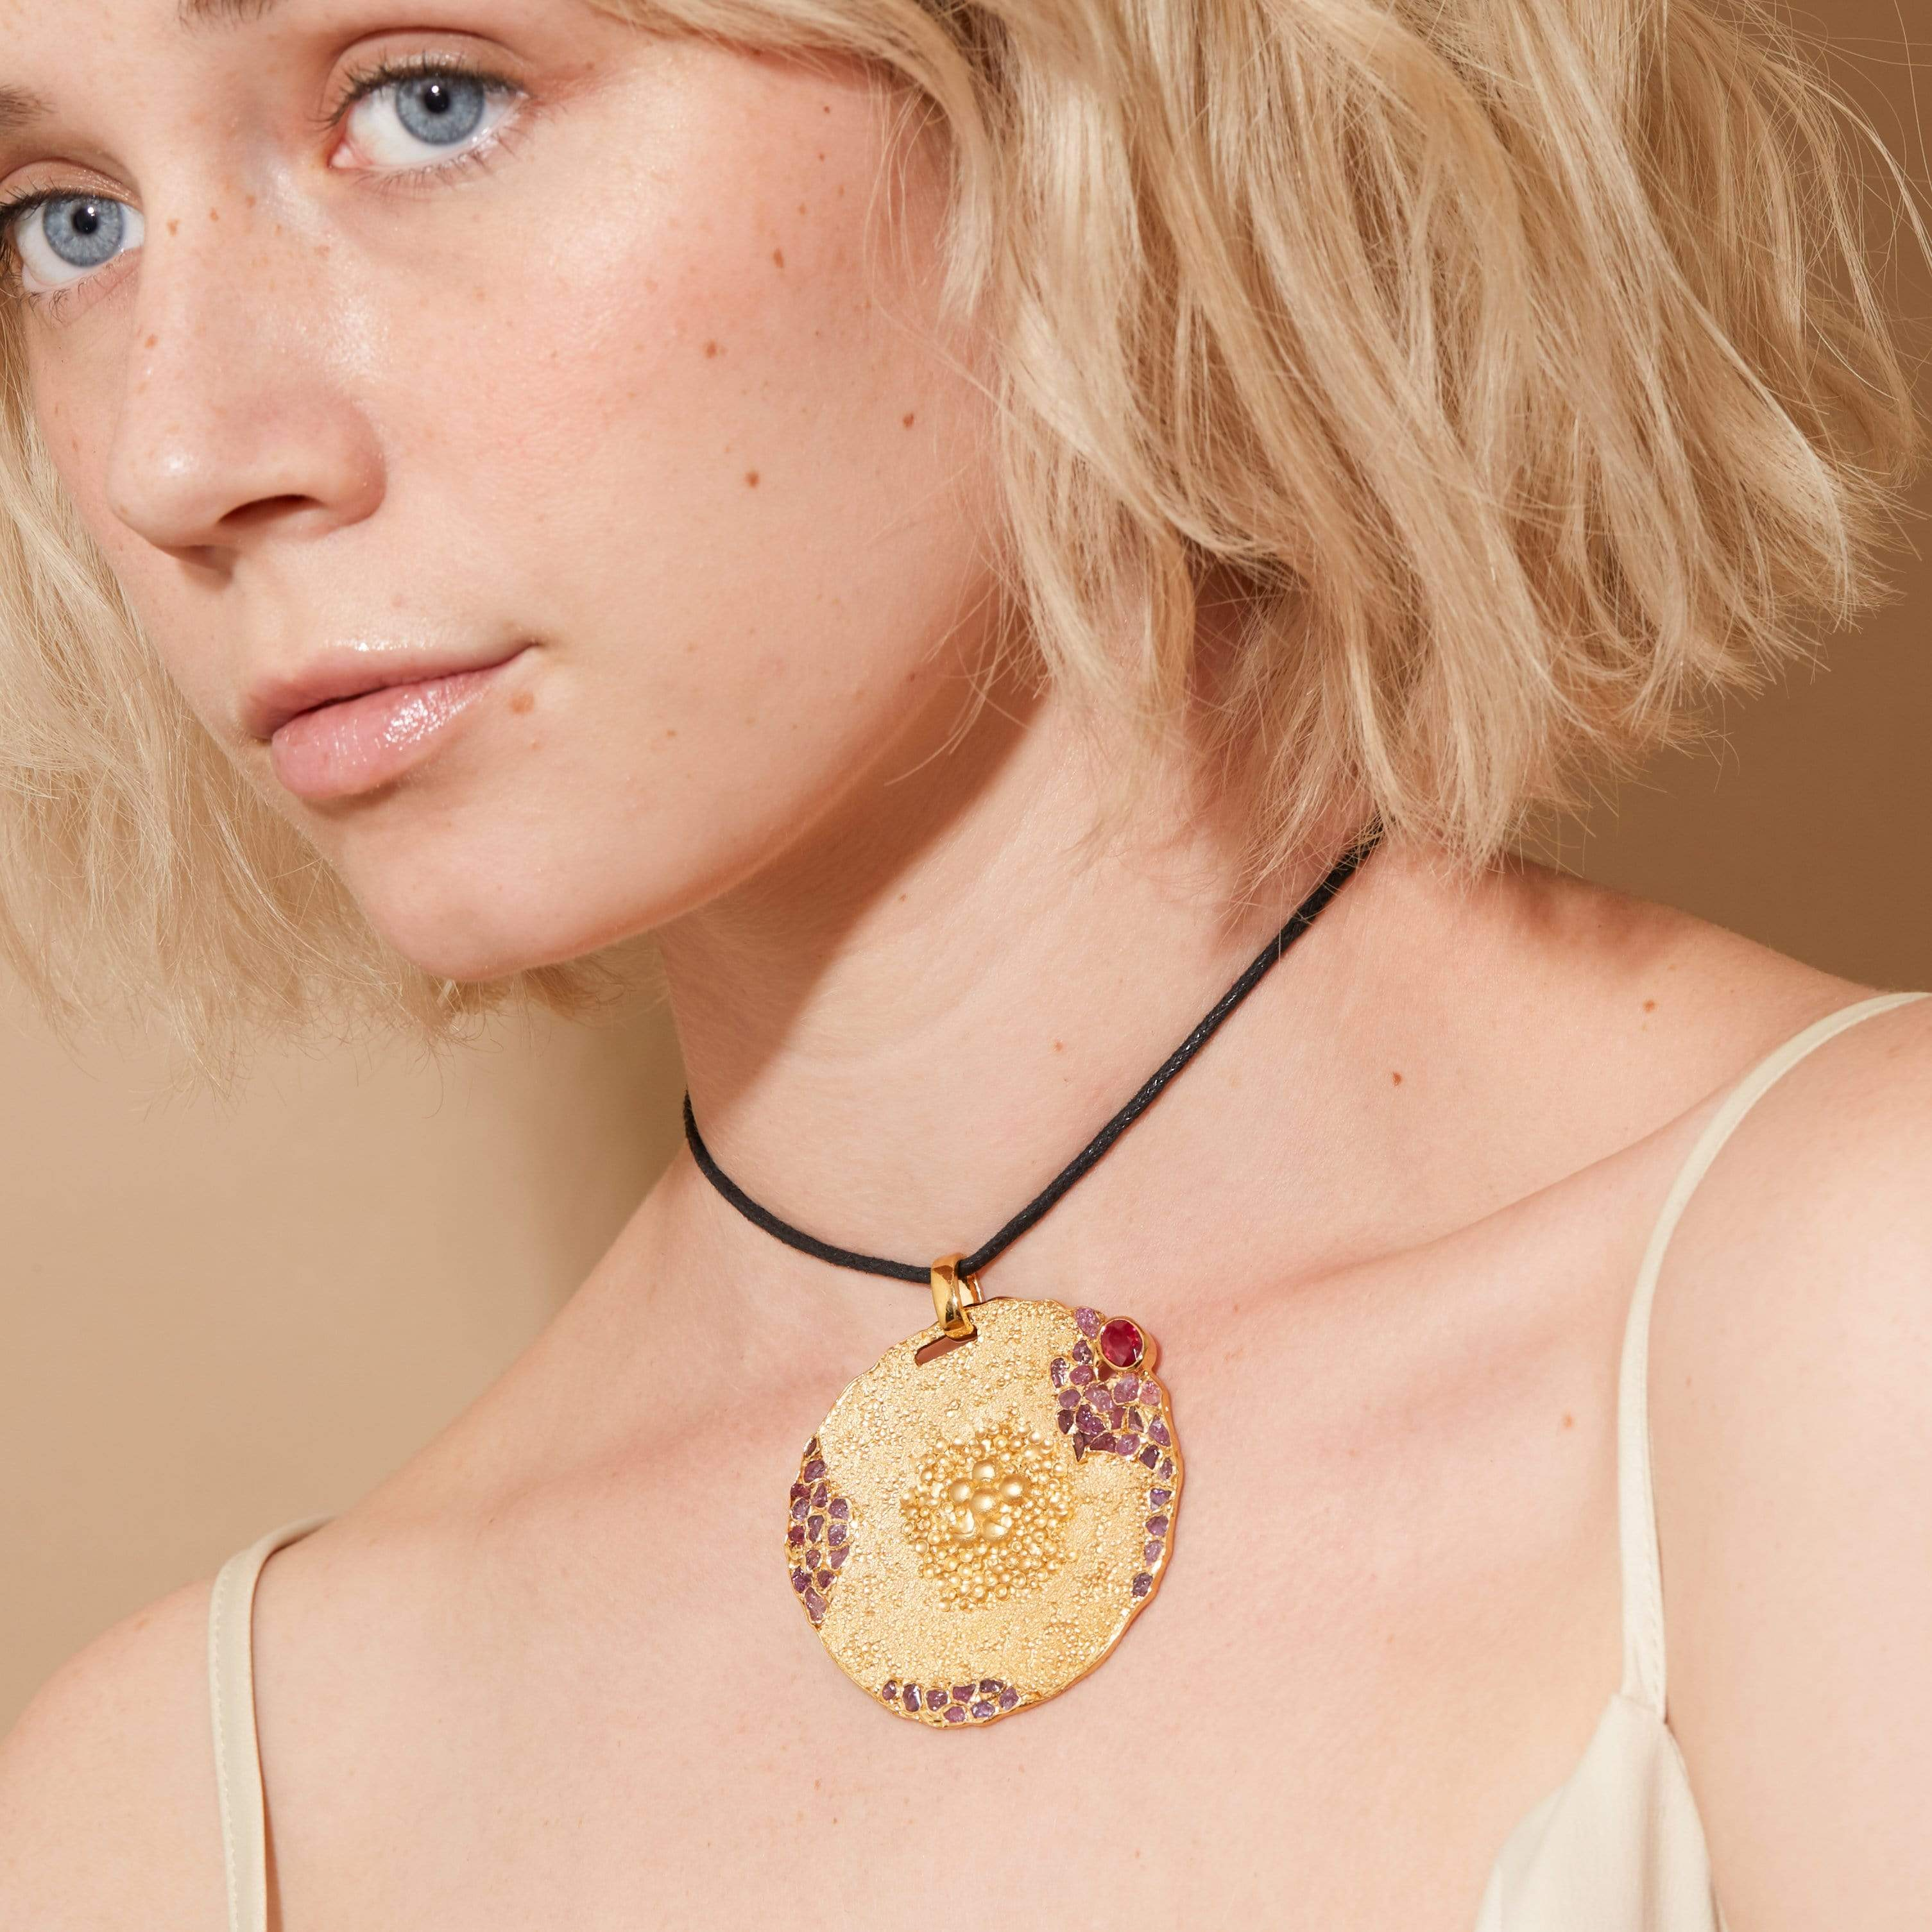 Danae Pendant, Exclusive, Gold, Ruby, spo-disabled, StoneColor:PinkRuby, Style:Statement, Type:StainedGlass Pendant